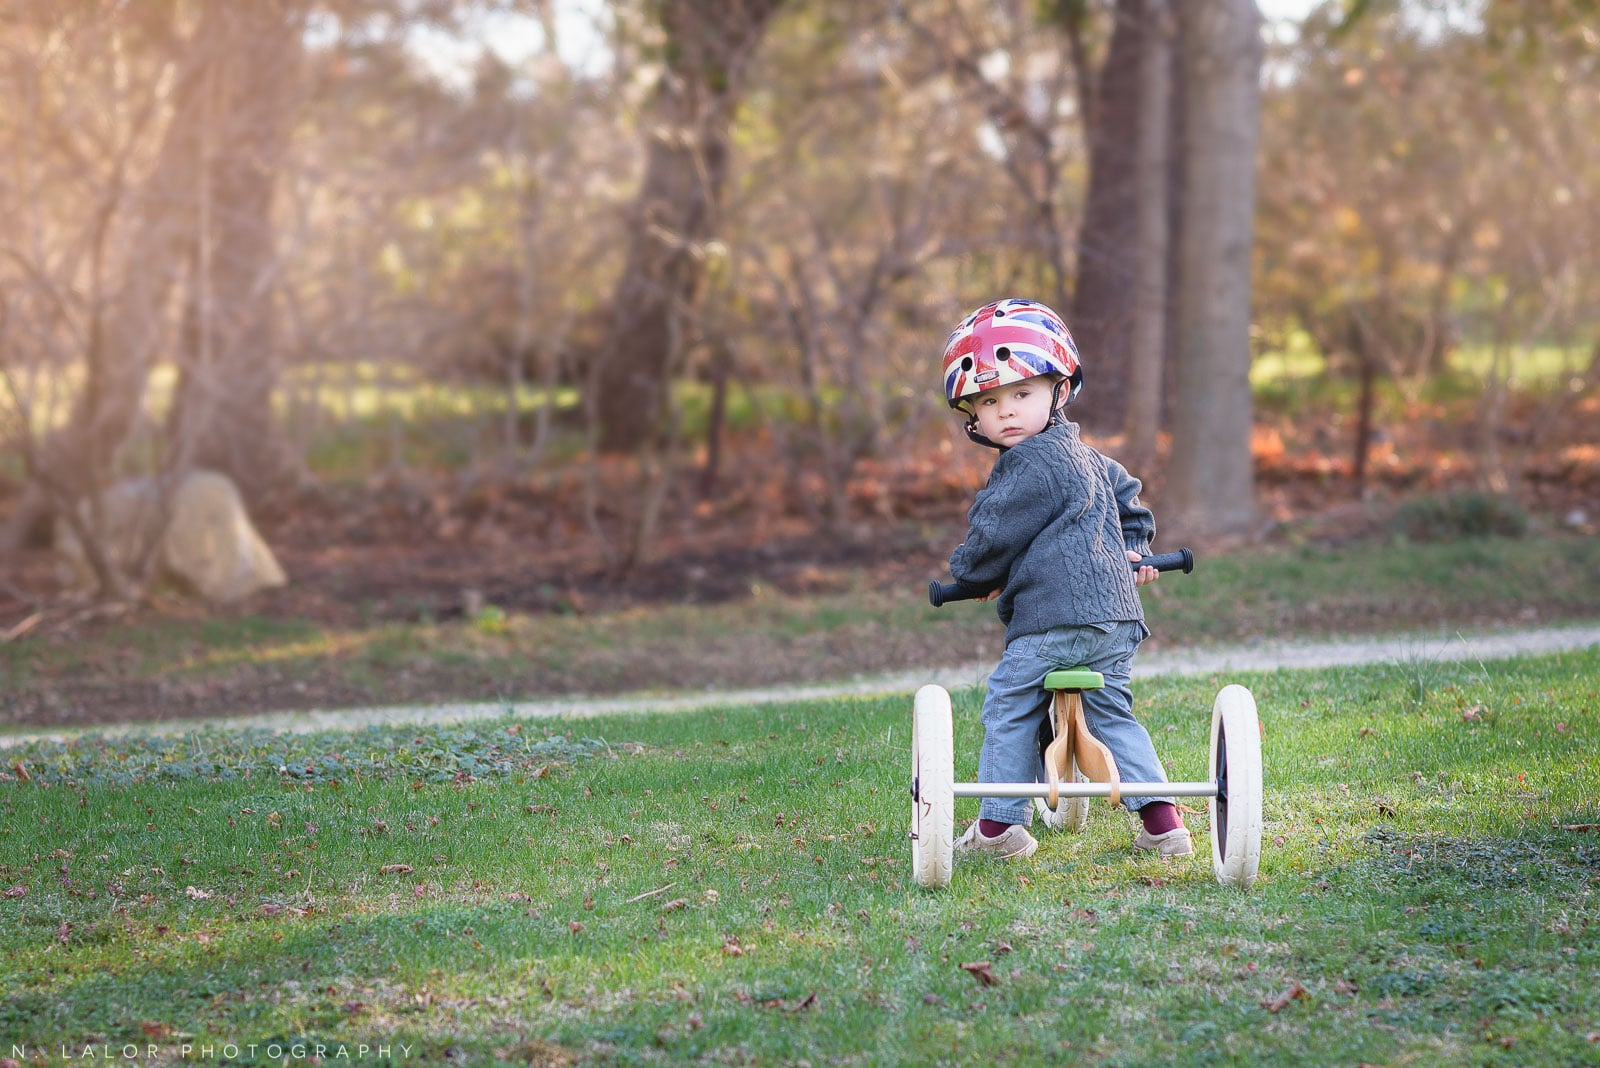 2-year old boy on his tricycle. Lifestyle outdoor portrait by N. Lalor Photography.